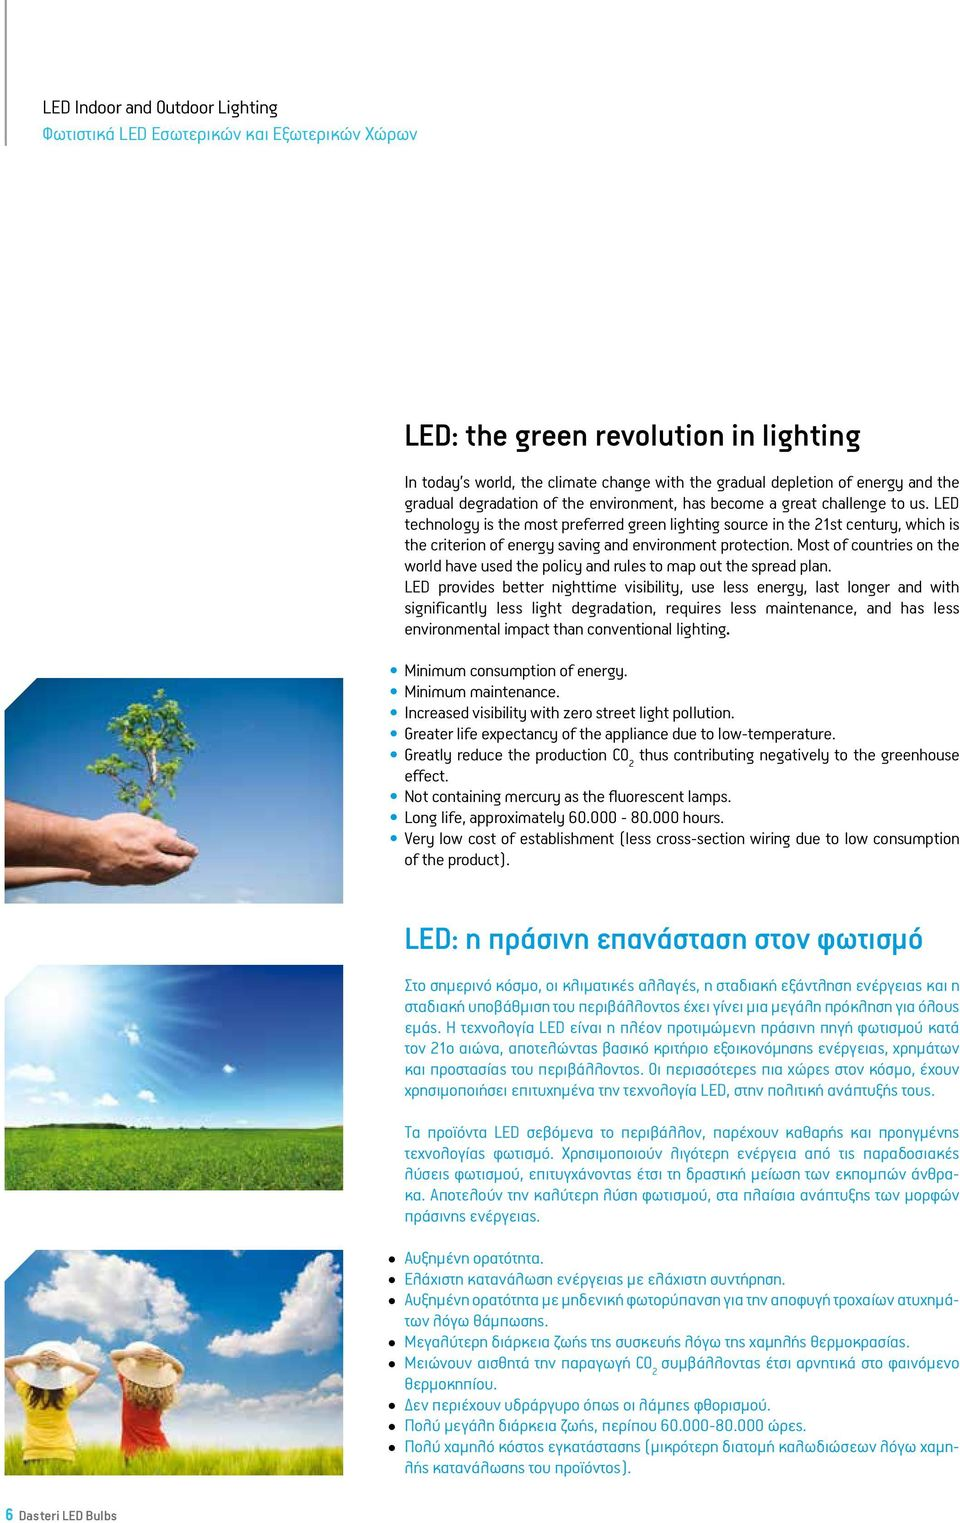 LED technology is the most preferred green lighting source in the 21st century, which is the criterion of energy saving and environment protection.